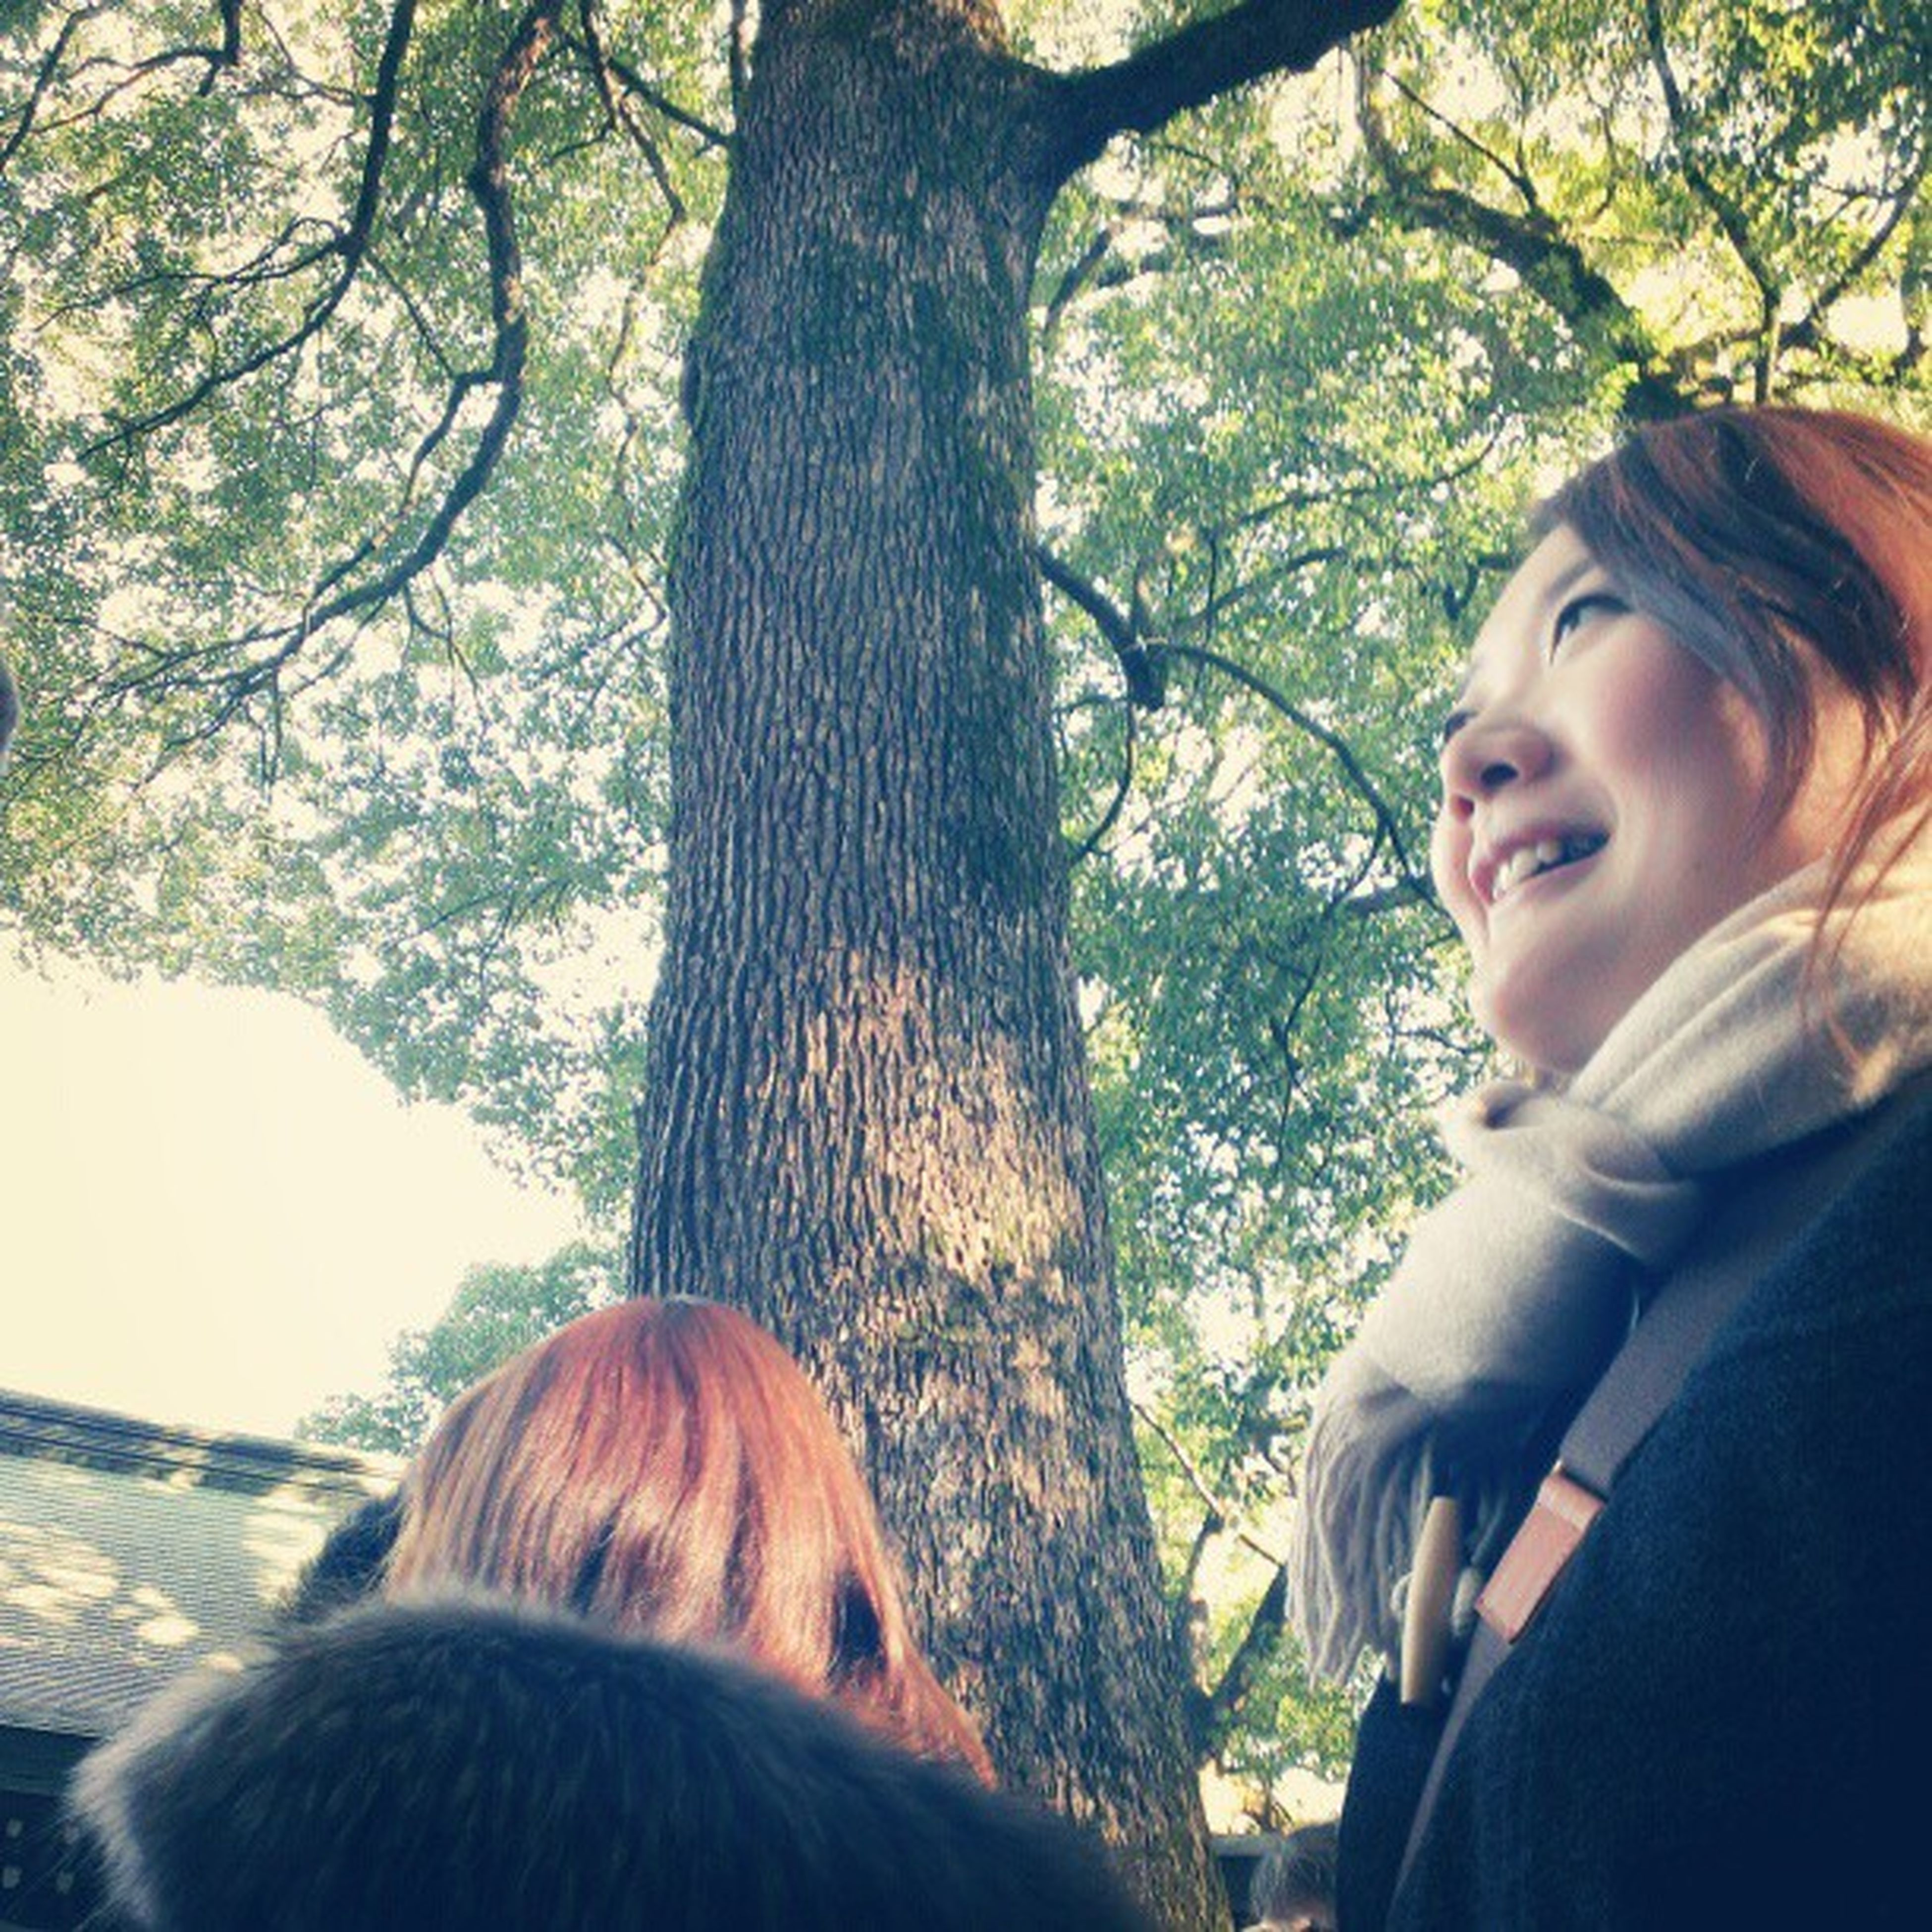 tree, lifestyles, headshot, leisure activity, person, young adult, casual clothing, tree trunk, portrait, young women, looking at camera, focus on foreground, forest, head and shoulders, day, smiling, front view, waist up